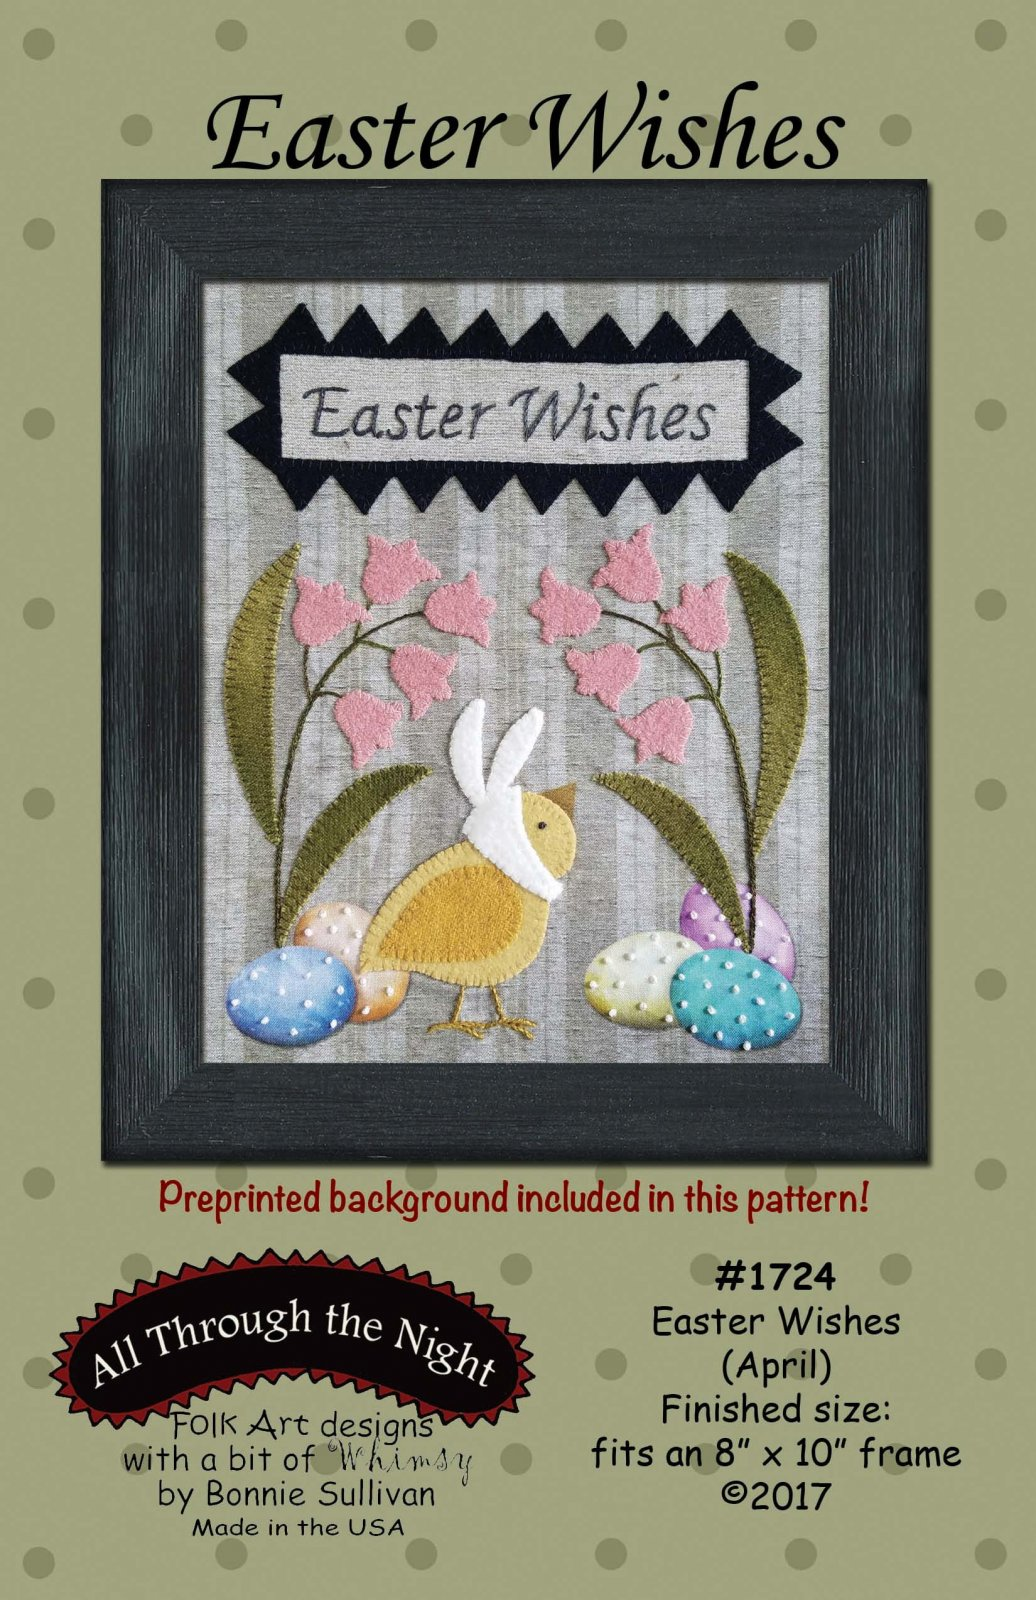 1724 Easter Wishes (April)